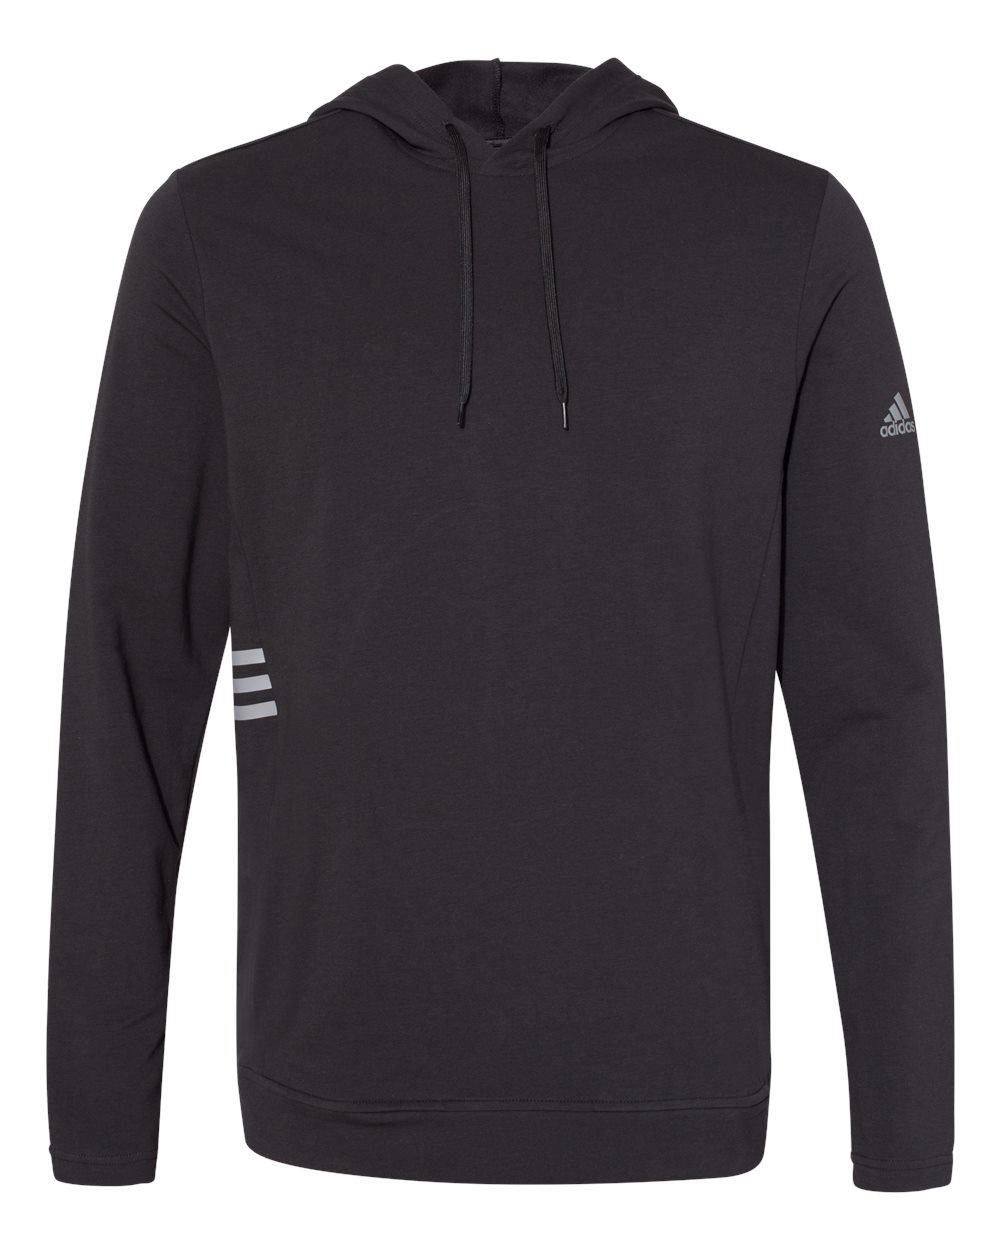 Adidas A450 - Lightweight Hooded Sweatshirt